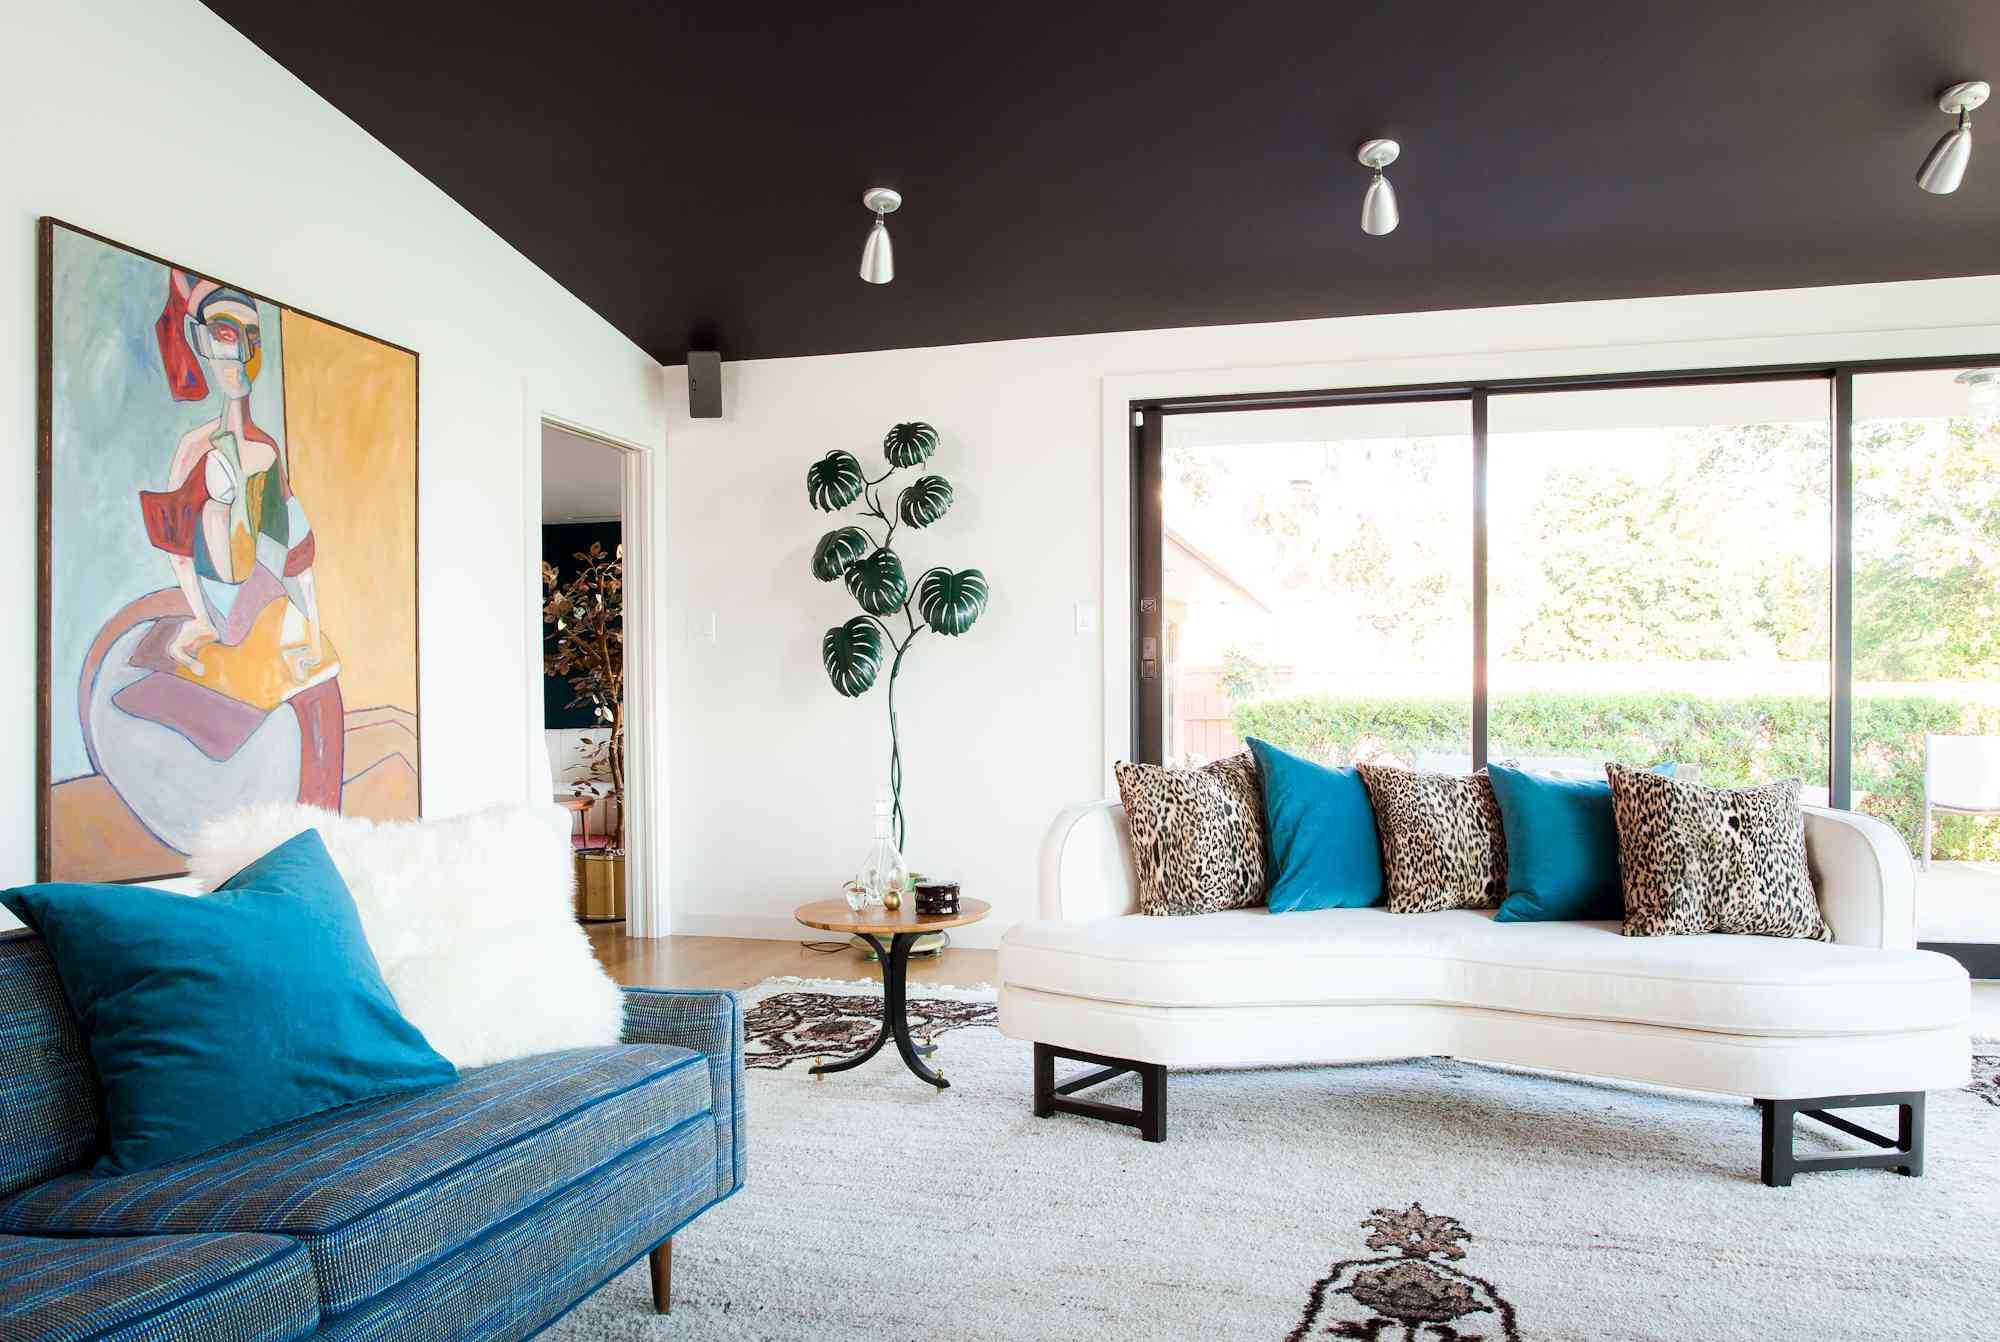 Living room with dark-painted ceiling, midcentury modern décor